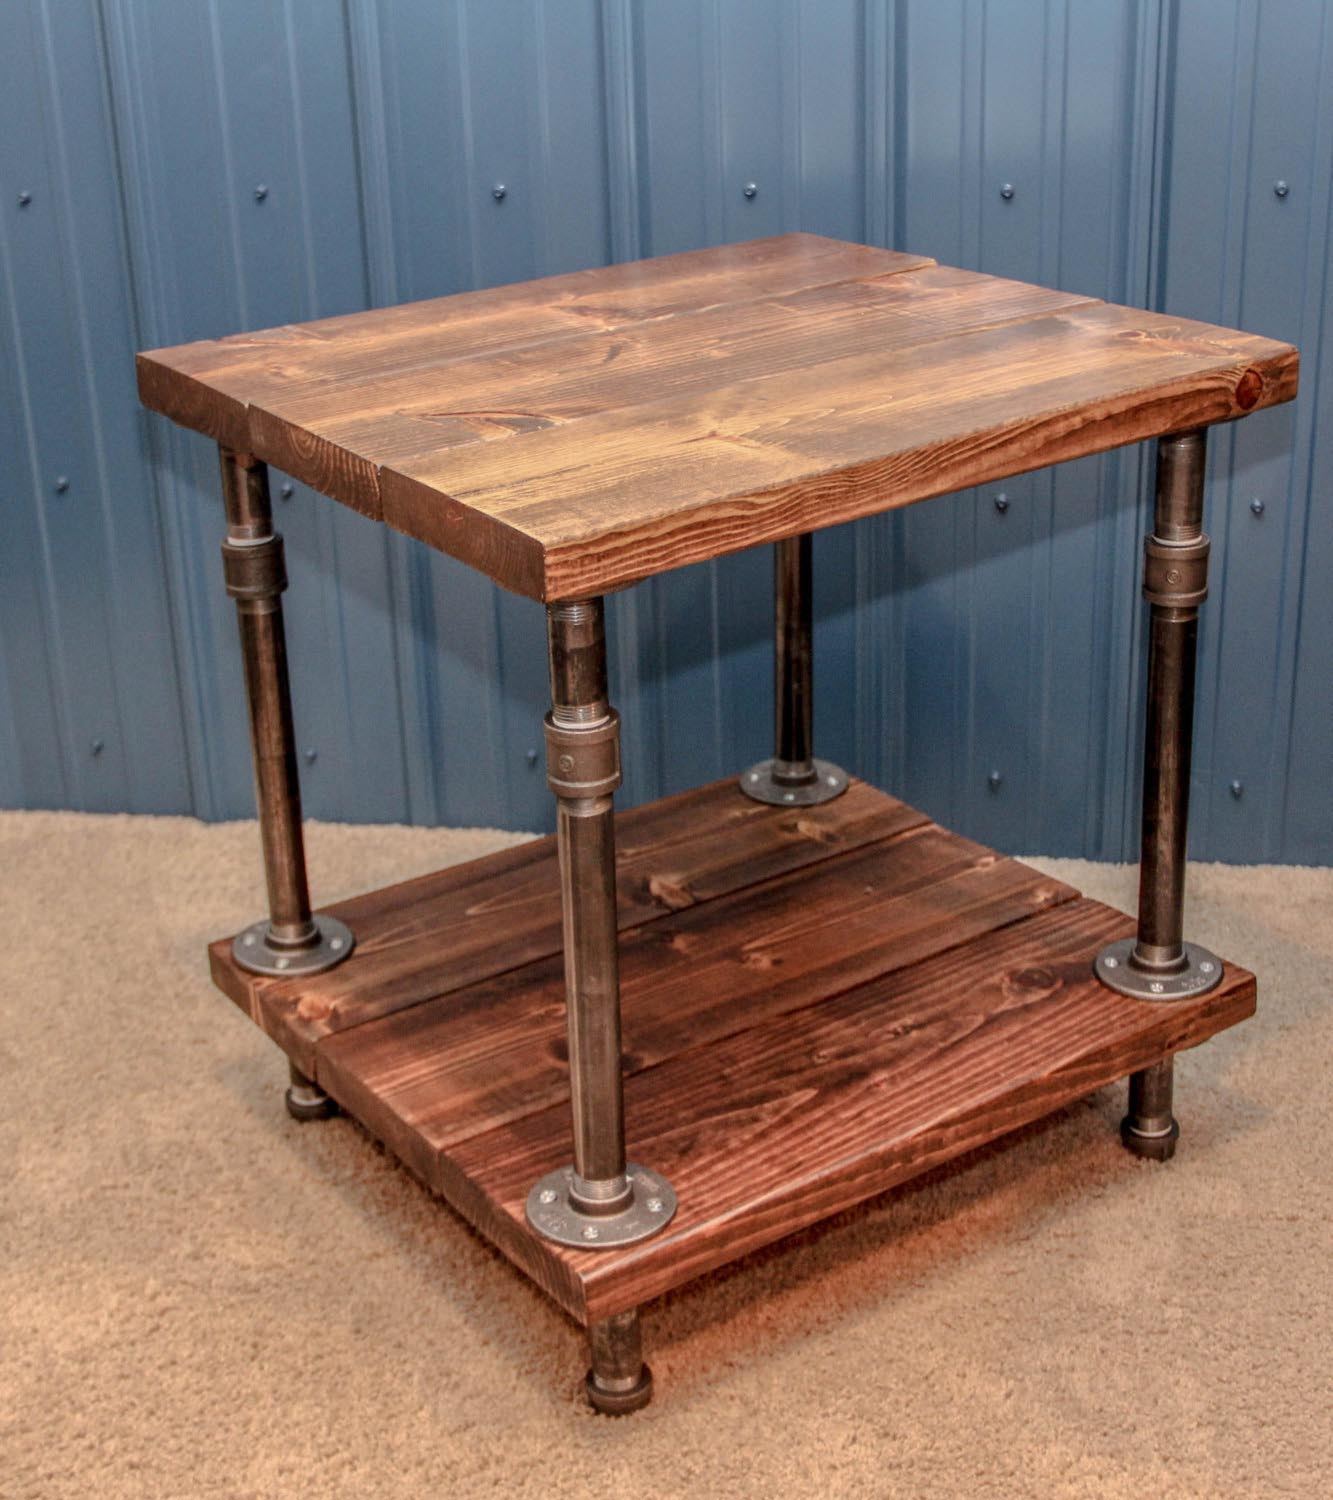 Wooden End Table Rustic Wood End Table Coffee Table Design Ideas